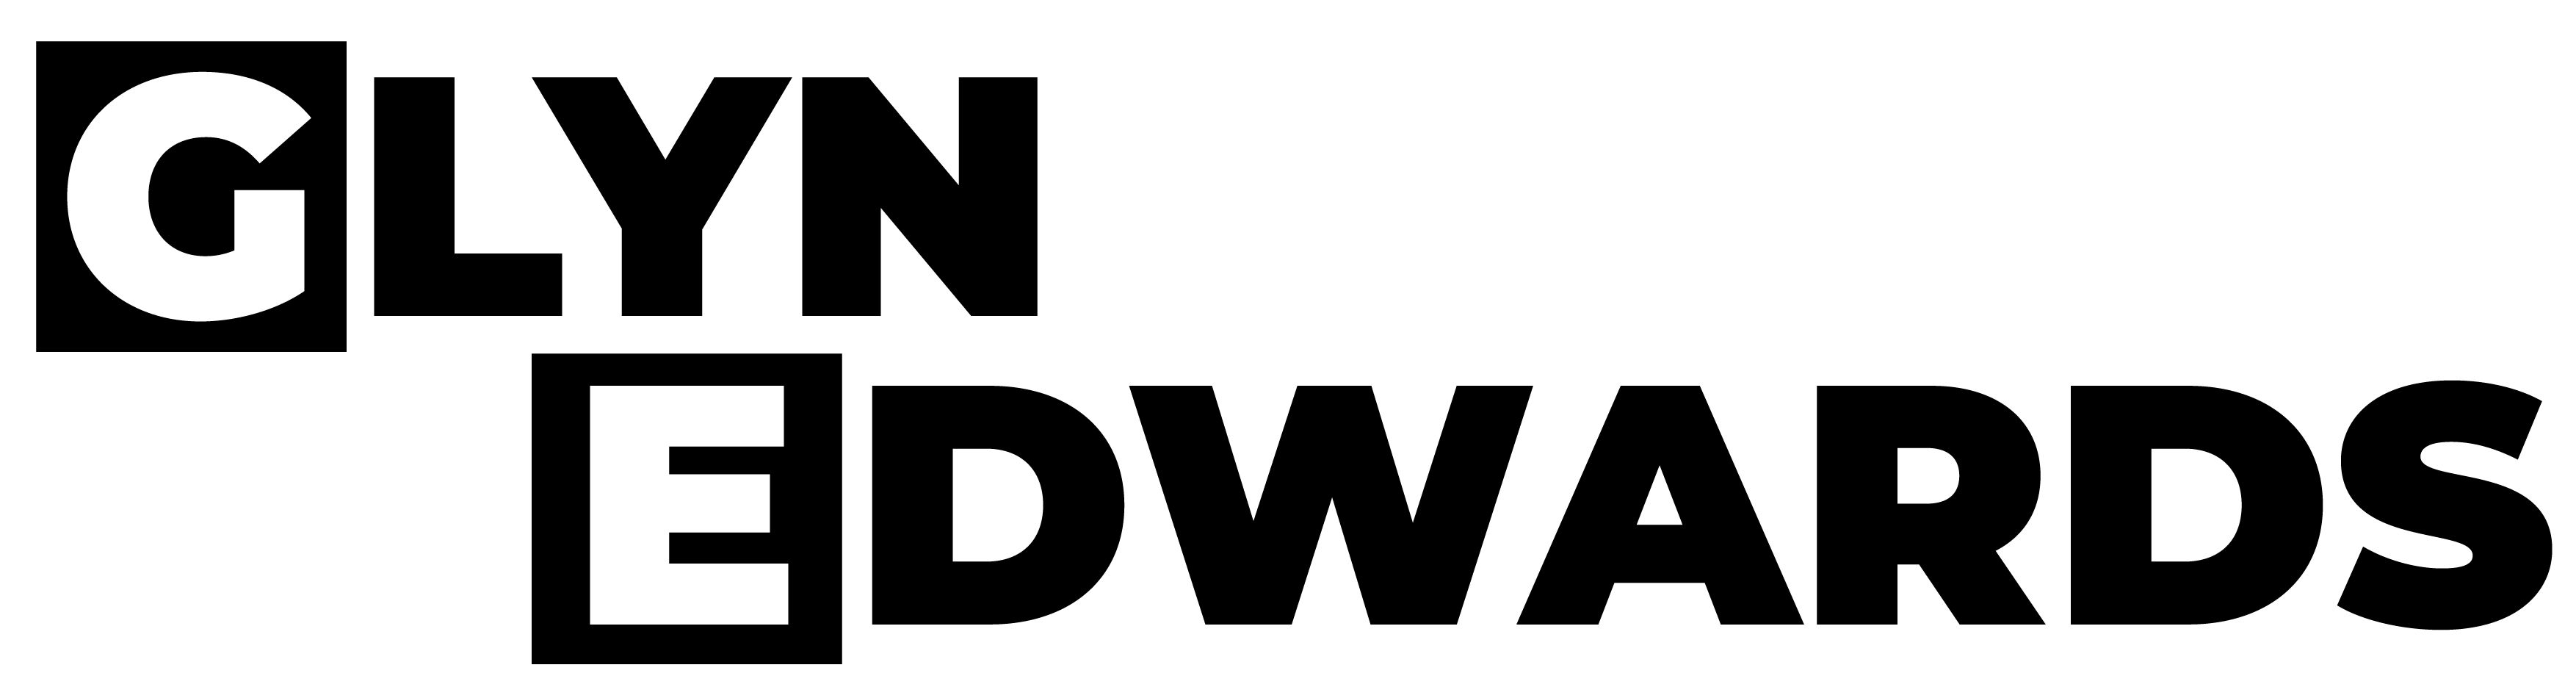 Glyn Edwards Logo